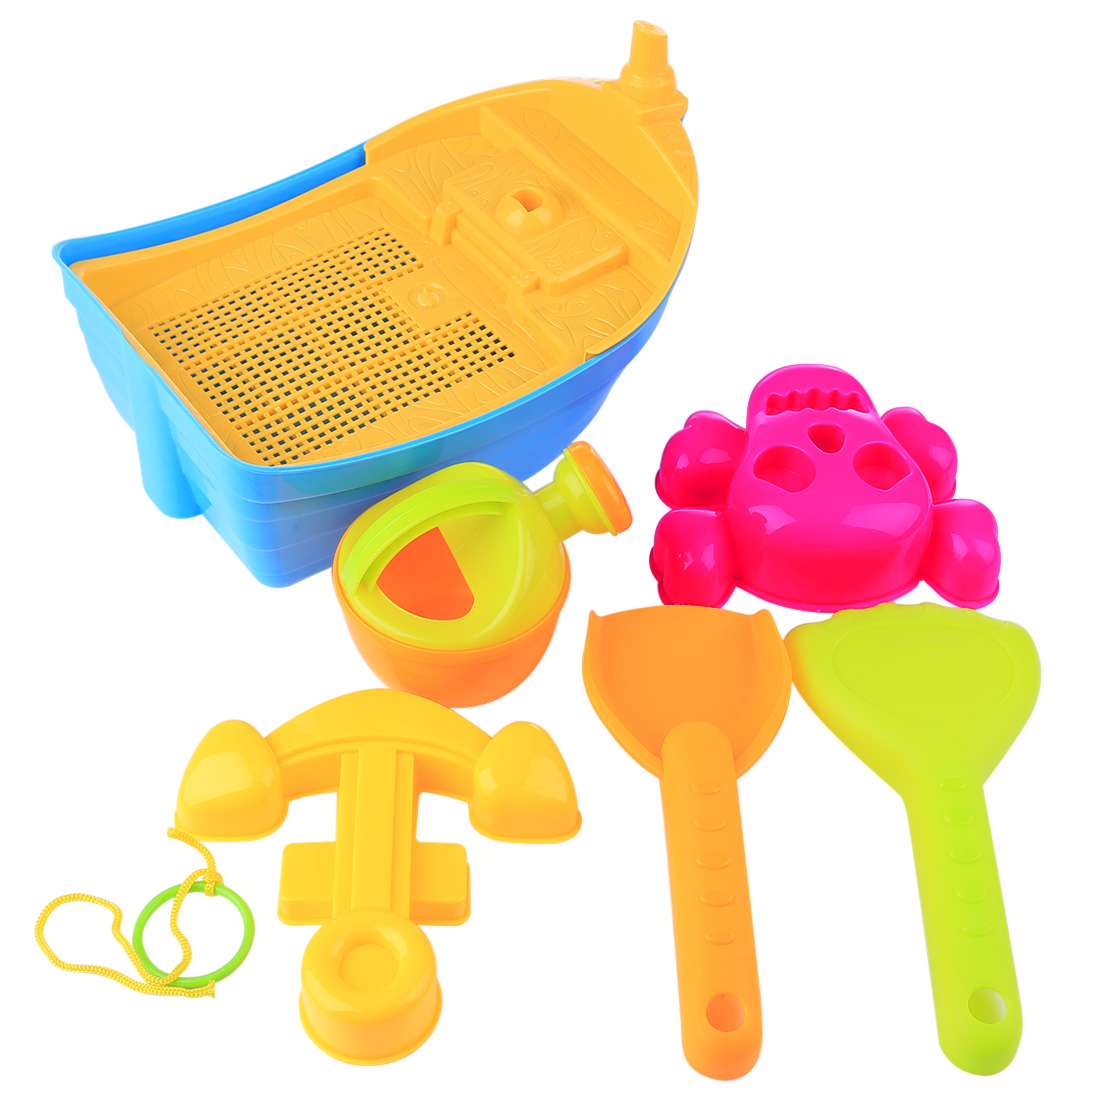 6Pcs Summer Beach Sand Toys Plastic Beach Boat Playset Build Model Sand Clay Mold Sand Water Playing Tool Toy For Kids Children